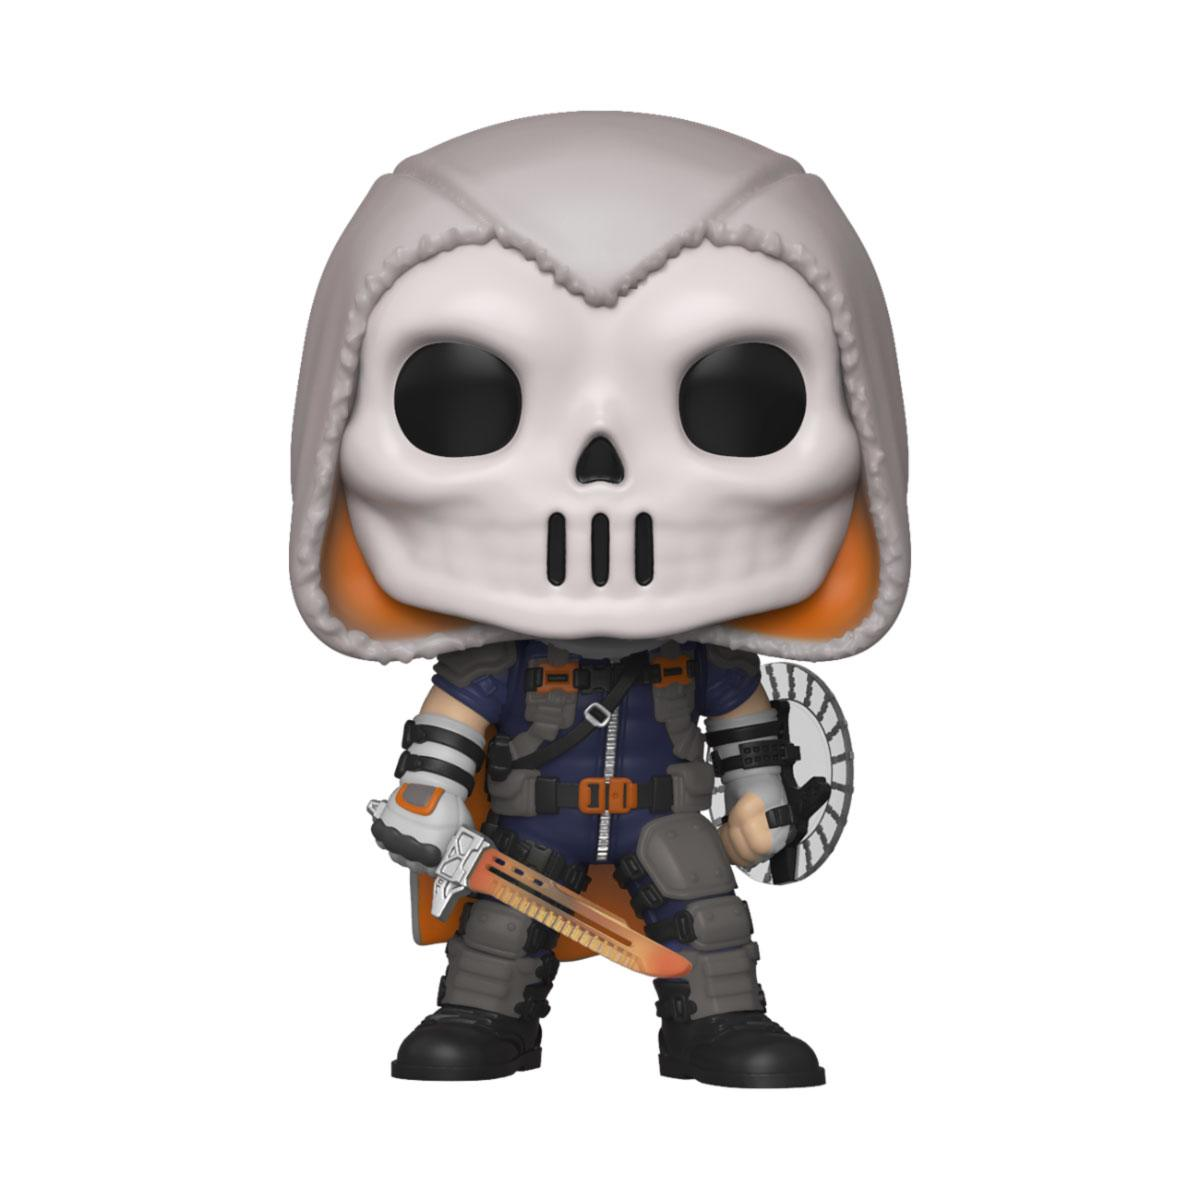 Marvel's Avengers (2020 video game) POP! Marvel Vinyl Figure Taskmaster 9 cm